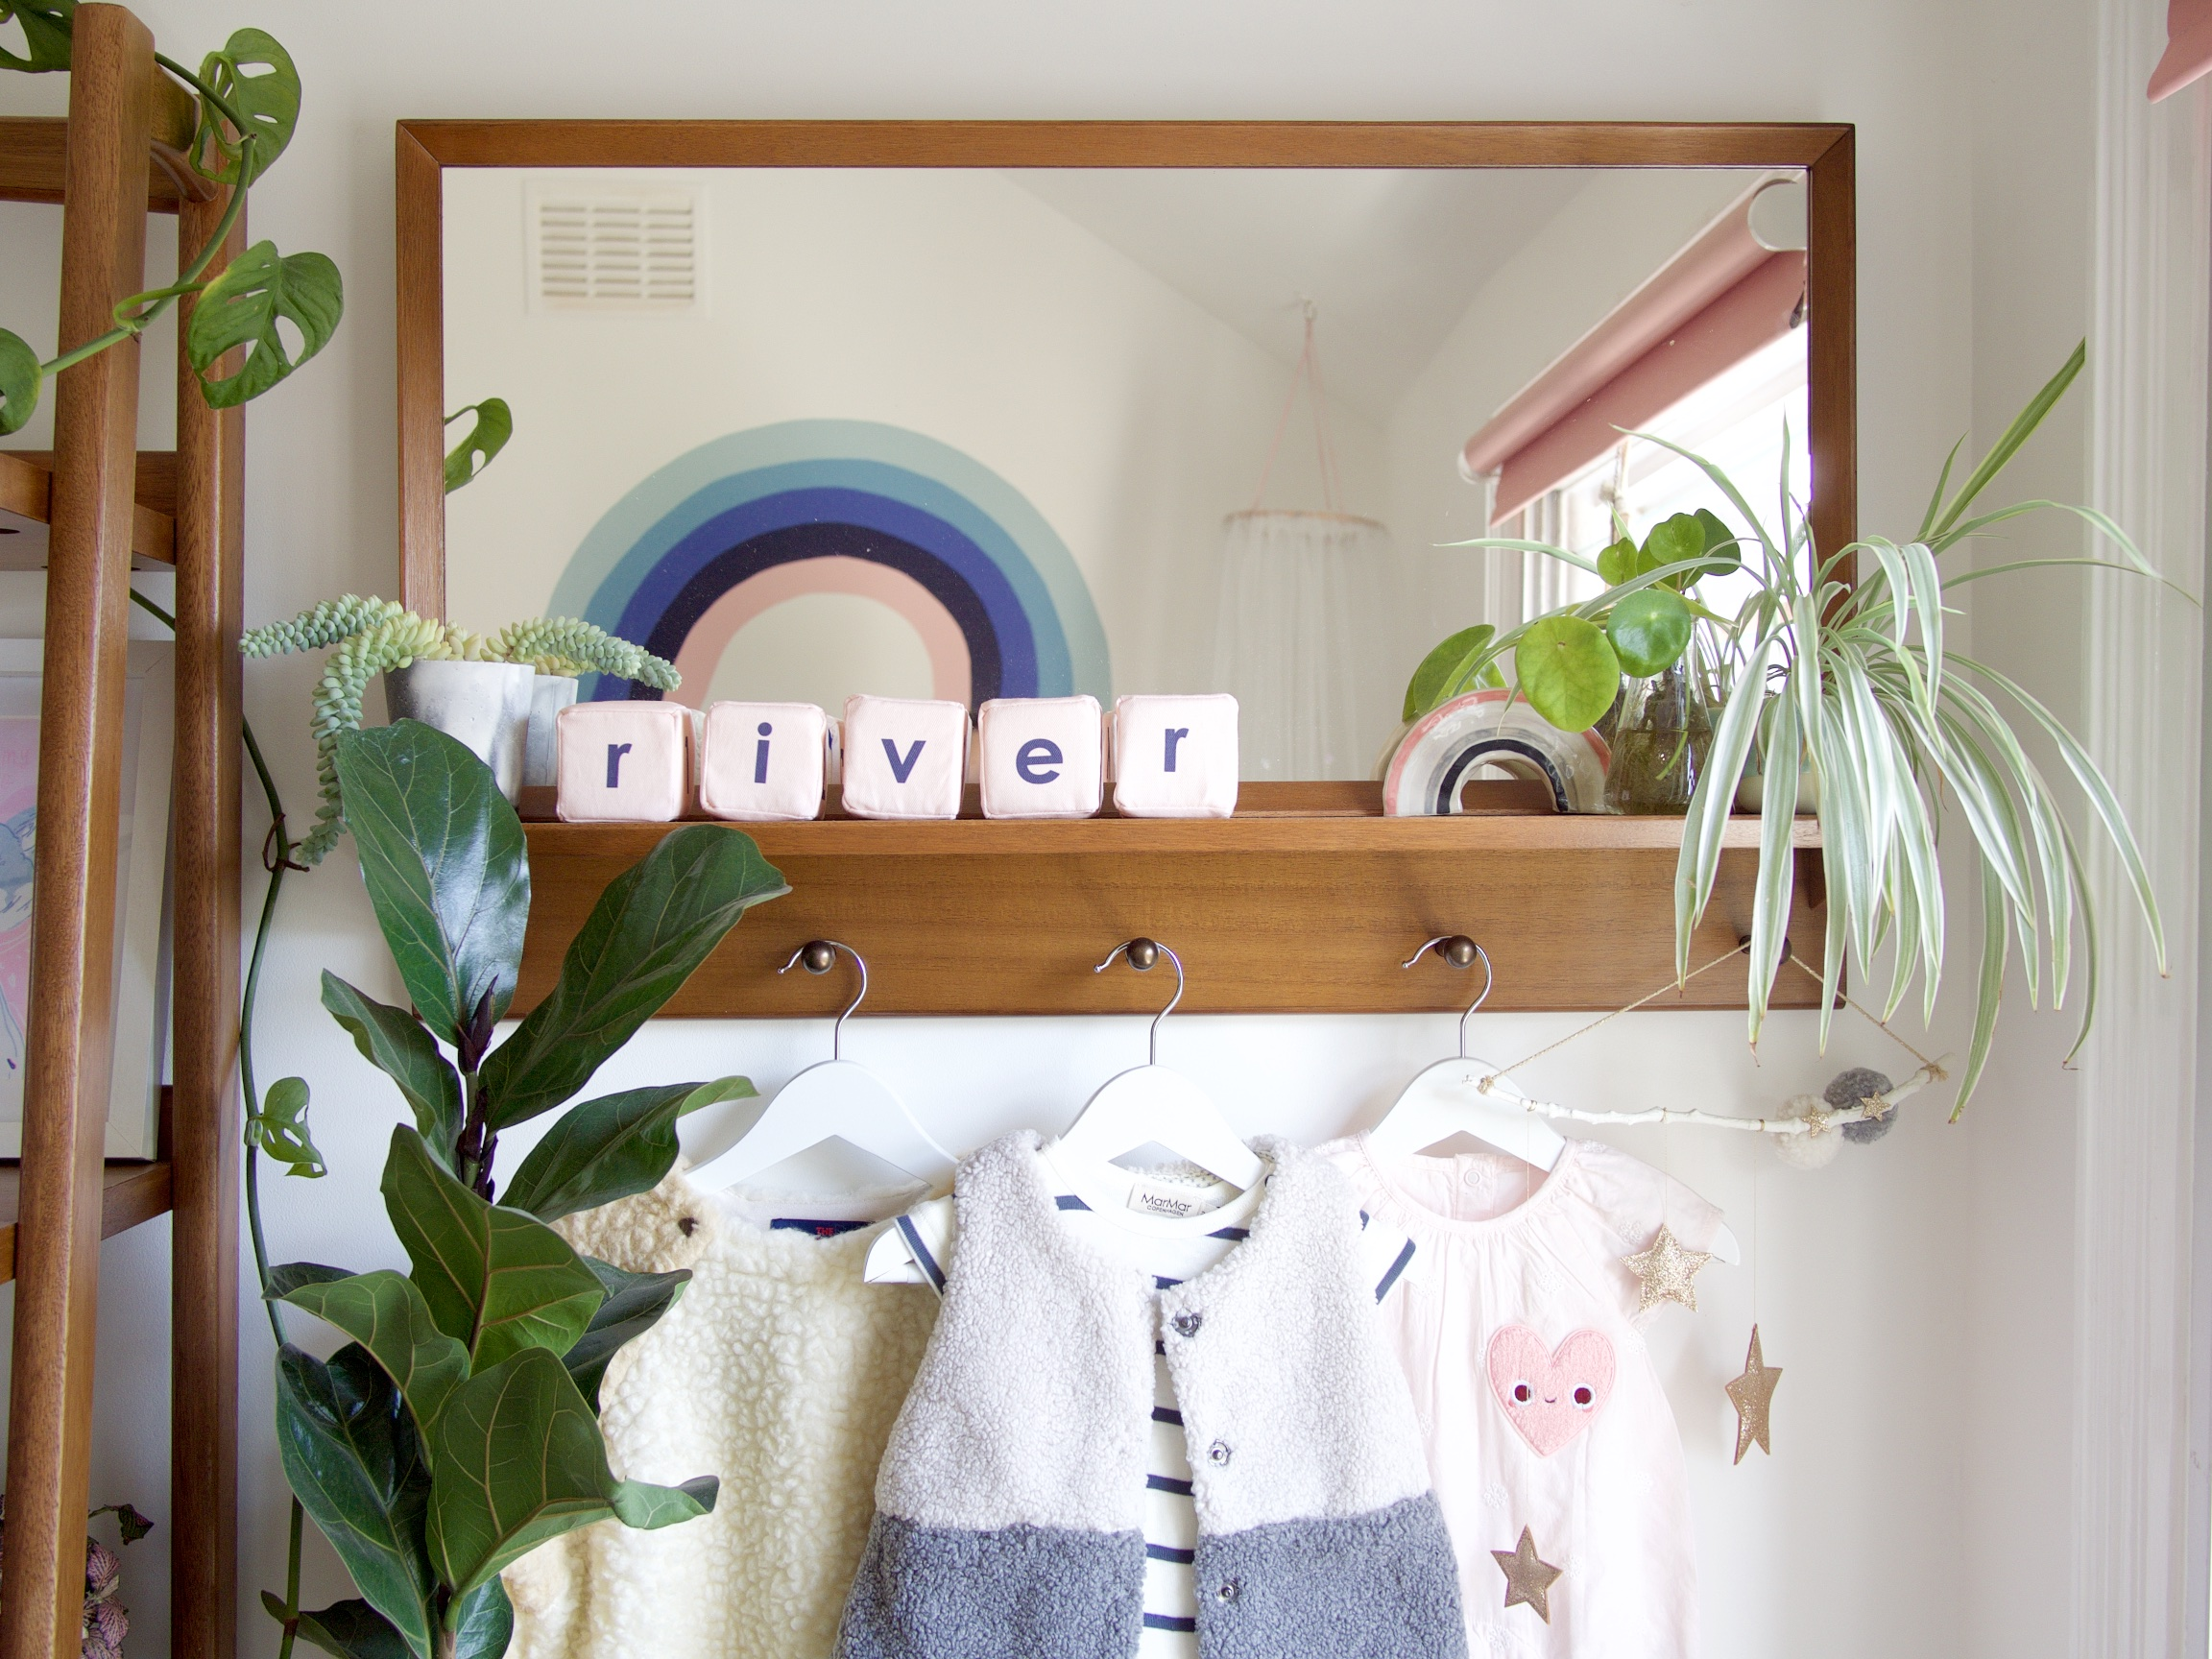 The Details:  mirror *;  sensory name blocks ; ceramic rainbow {handmade by me!}; plants: pilia,spider plant & fiddle-leaf fig;  shearling all in one ;  striped romper ;  two-toned gilet ;  pink romper ;  heart patch ;  hanging decoration